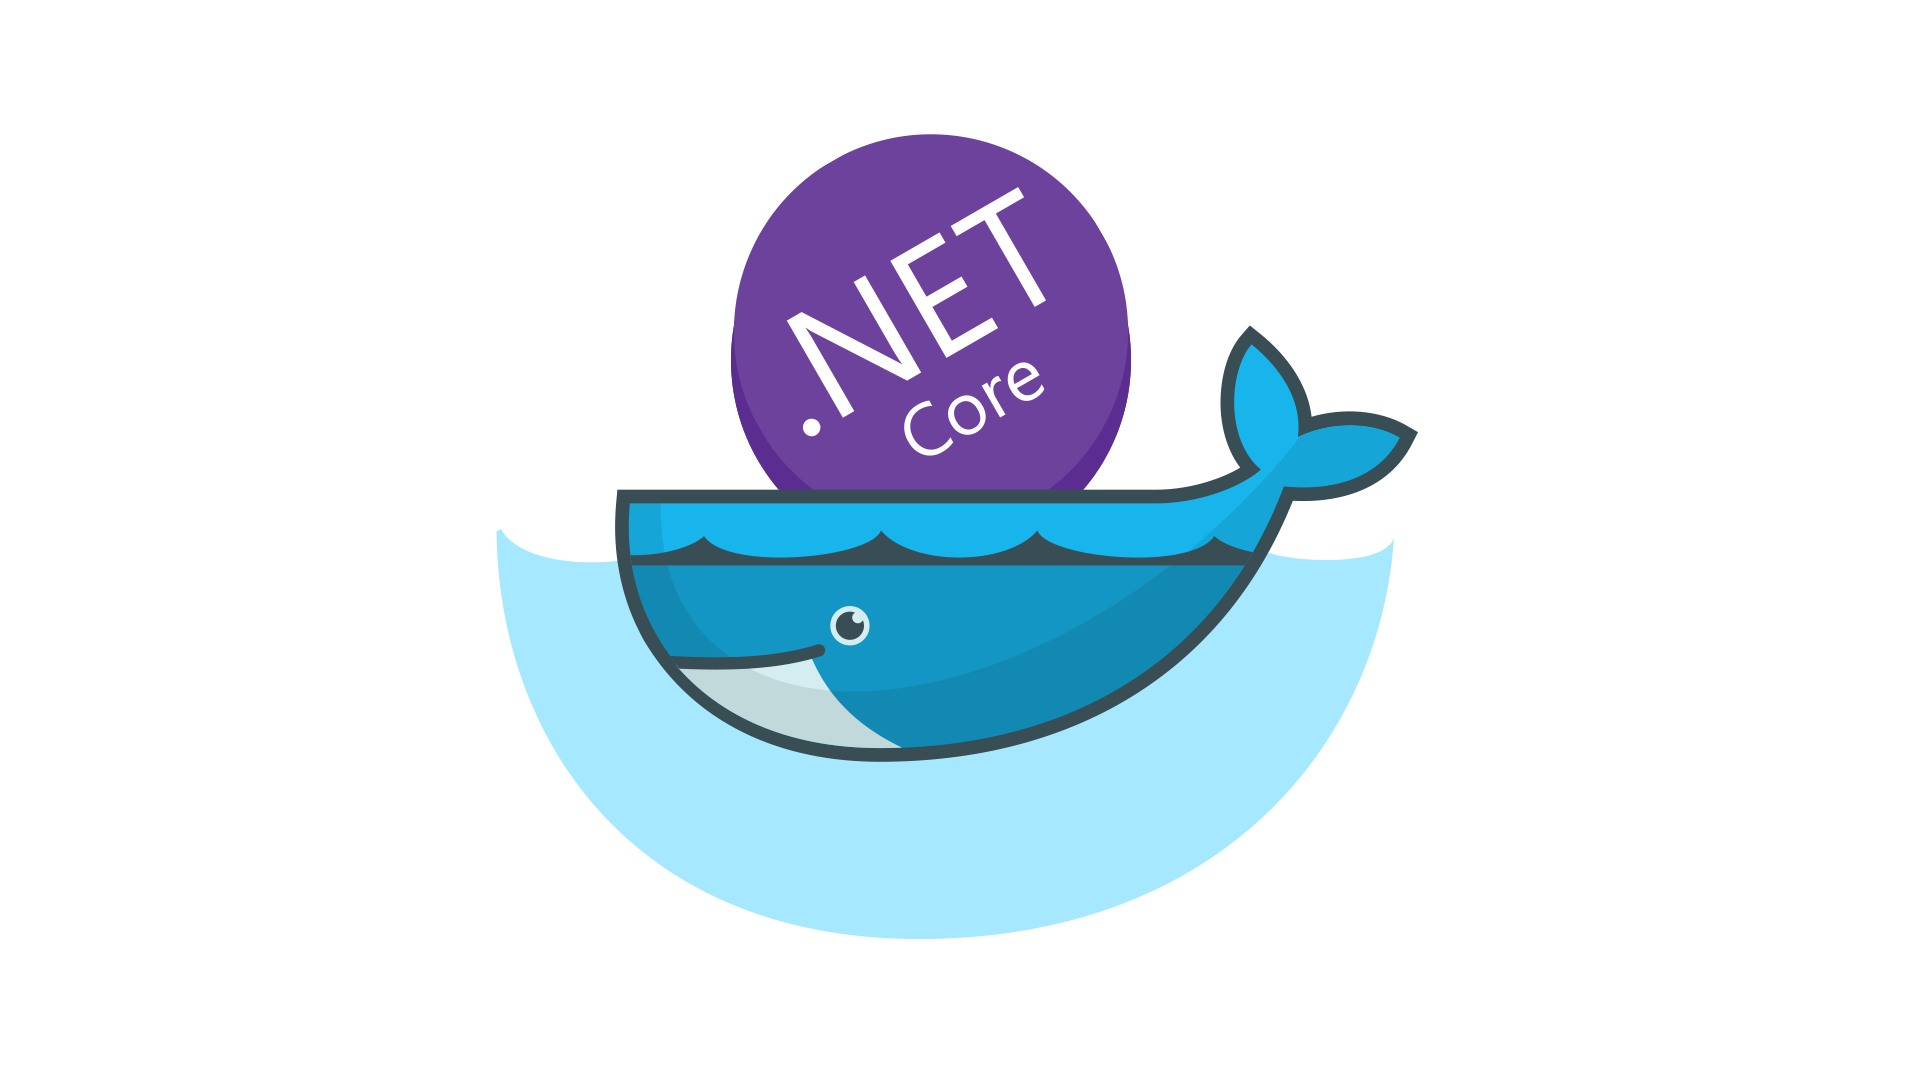 First contact to ASP.NET Core with Docker.